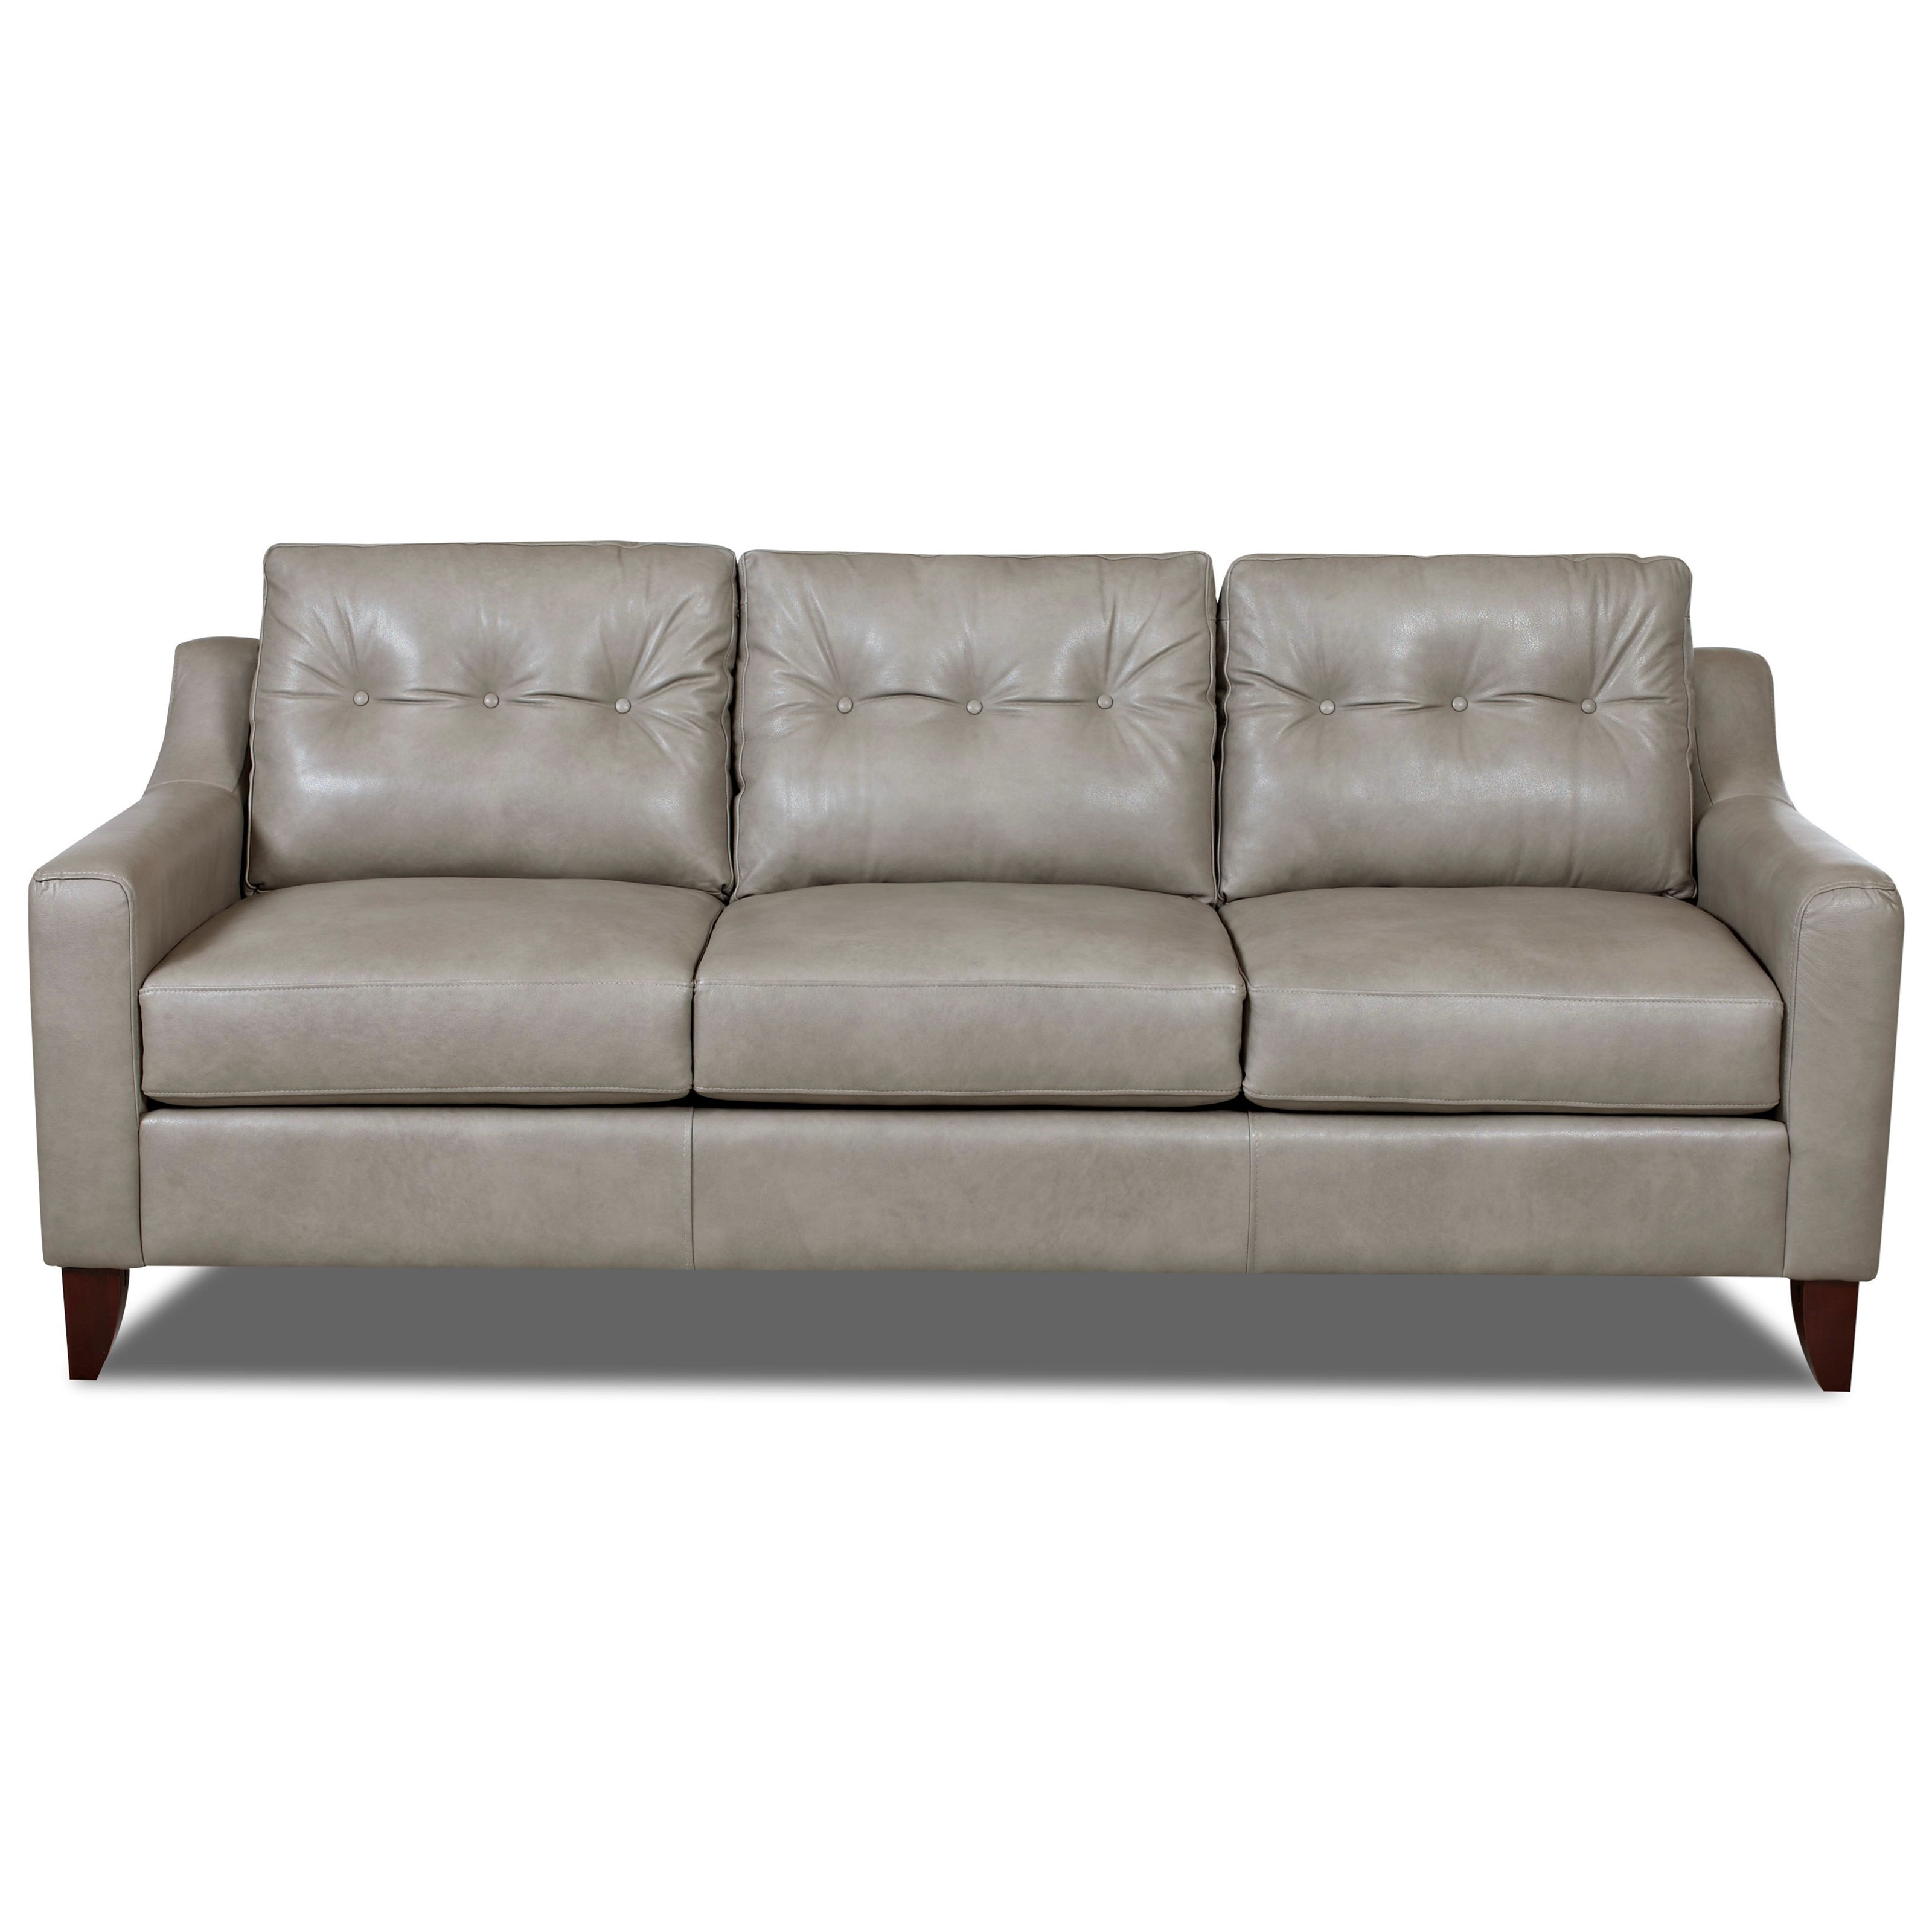 Mid-Century Modern Style Sofa with Tufted Cushions by ...